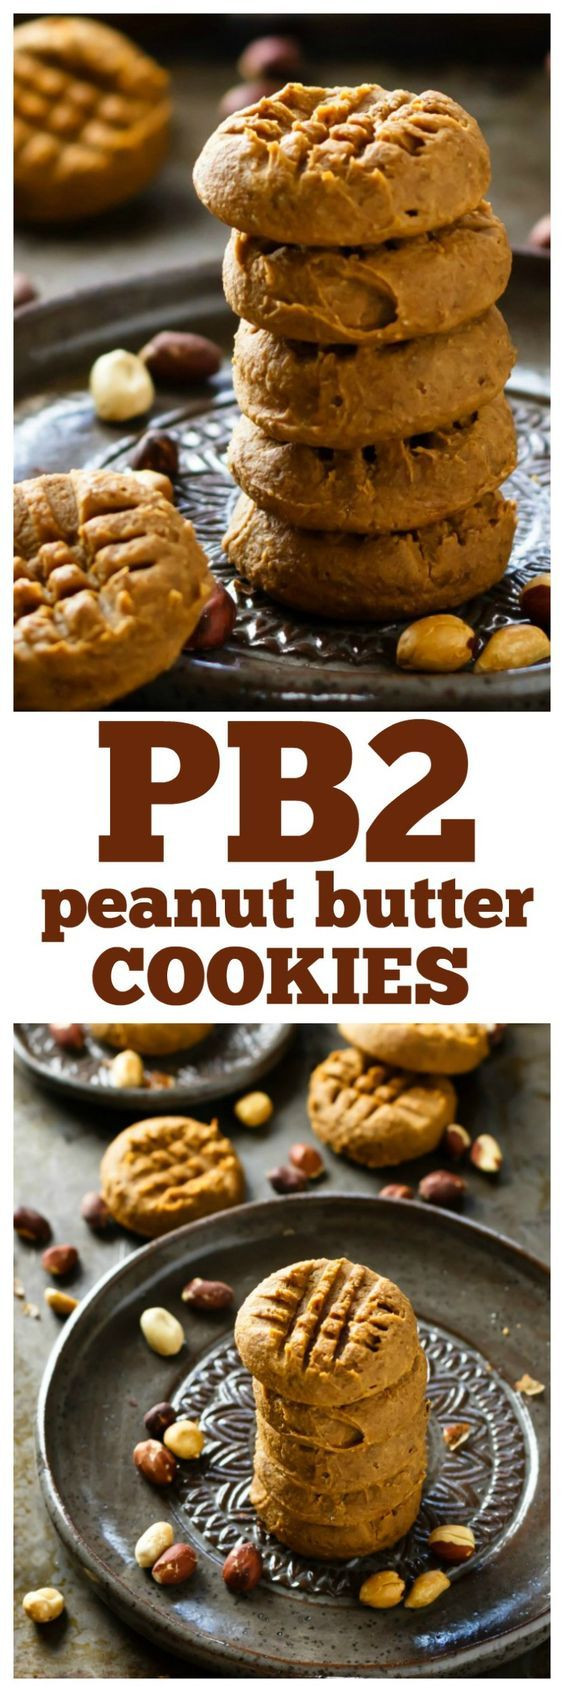 Low Carb Pb2 Recipes  1000 ideas about Pb2 Cookies on Pinterest